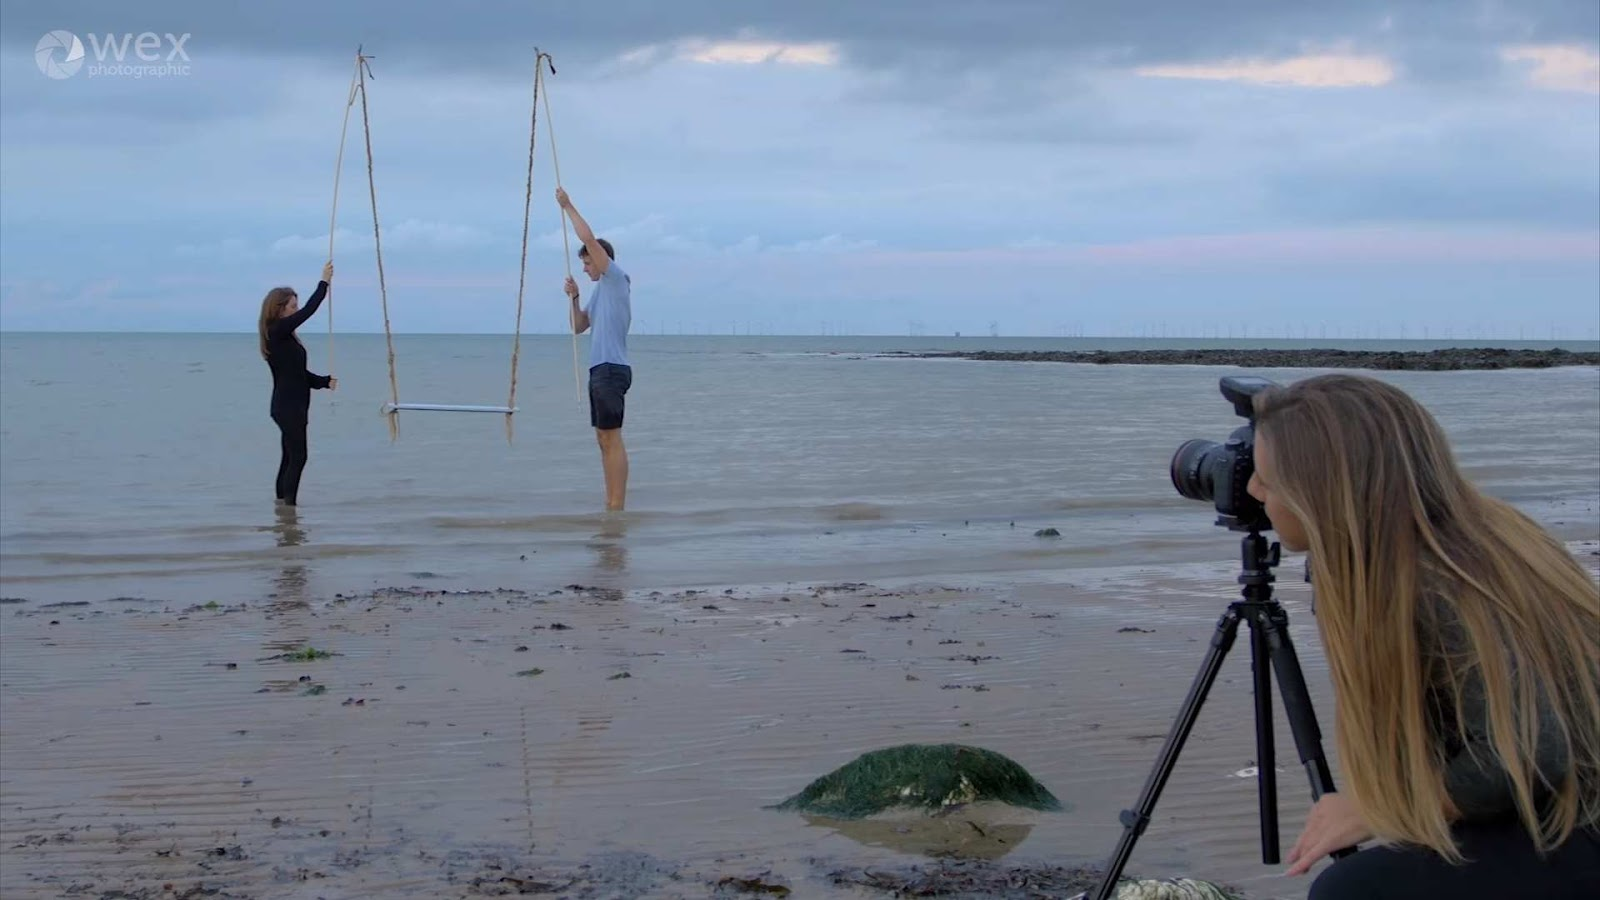 Beach Session with Hannah Couzens: Some valuable tips about reaching for that perfect shot.